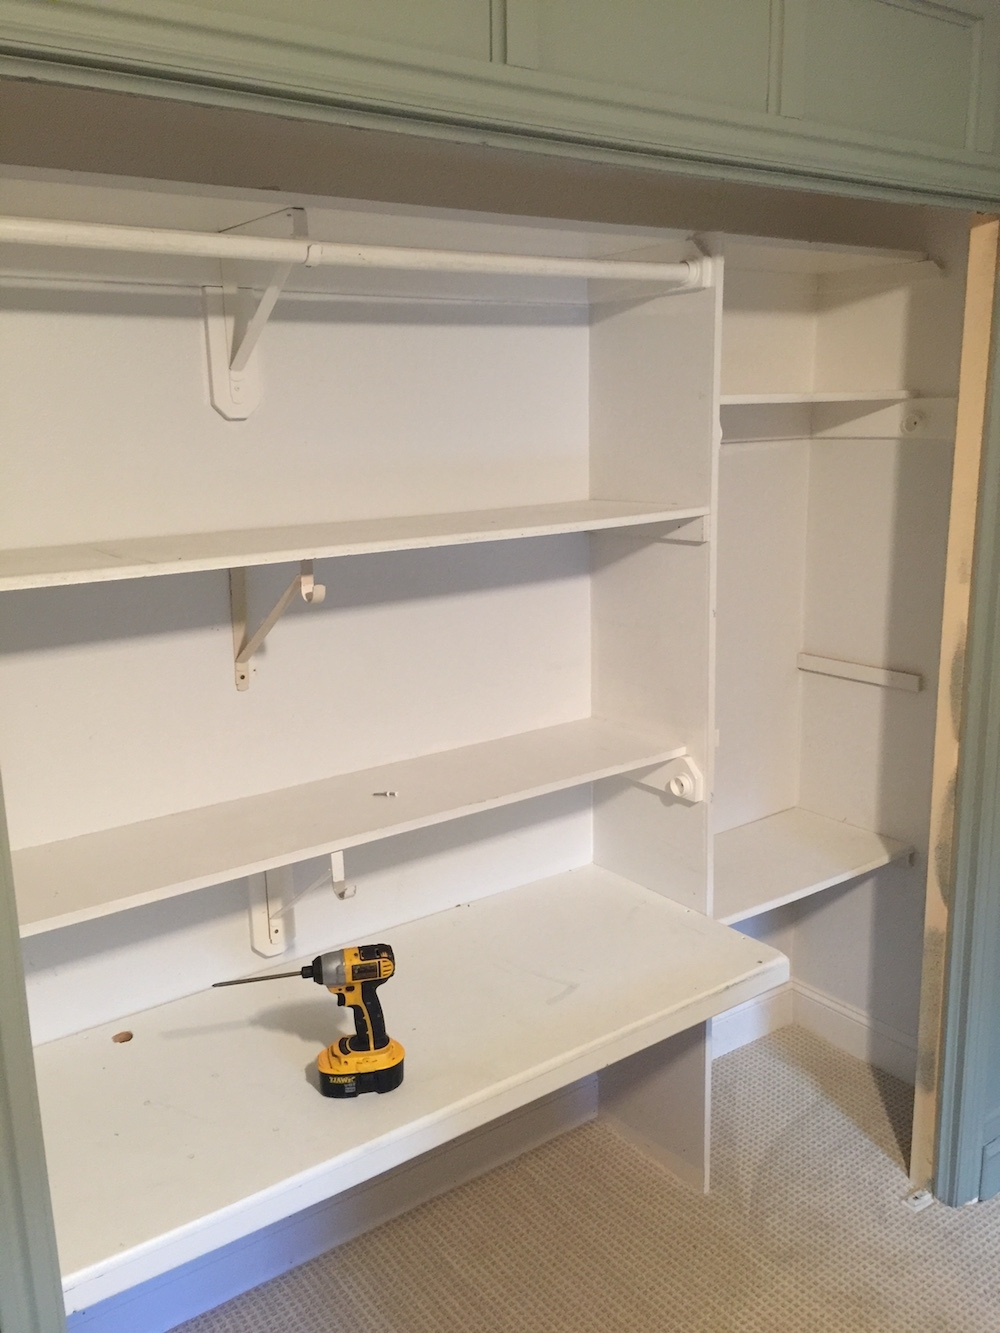 Bedroom Bookcases Pertaining To Latest Using Bookcases In A Bedroom Closet – Chris Loves Julia (View 3 of 15)